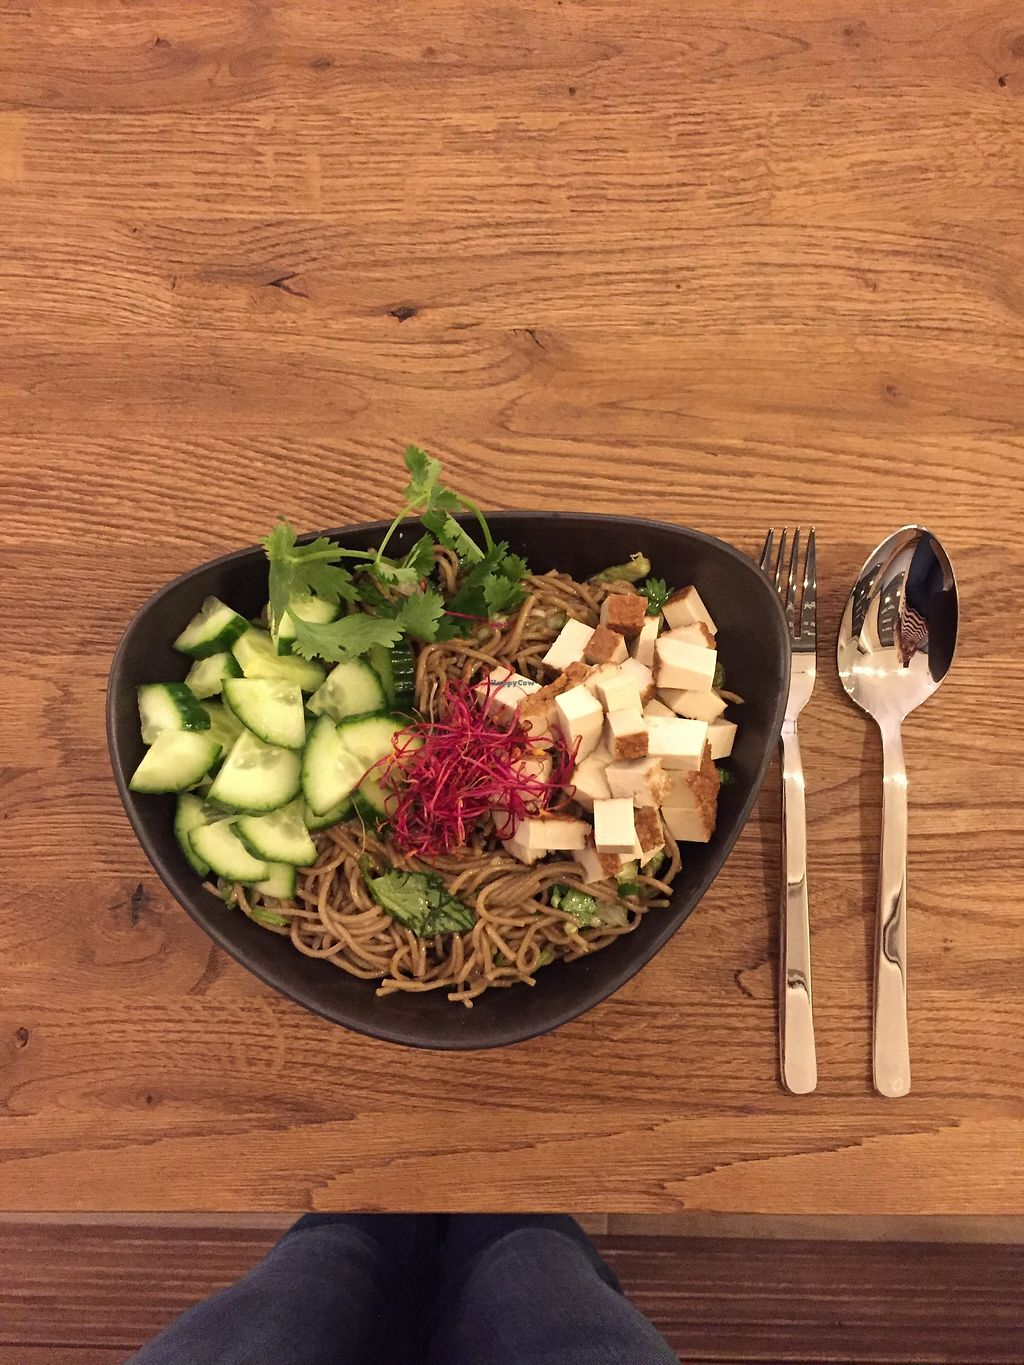 """Photo of Nährstoff-Reich  by <a href=""""/members/profile/velini"""">velini</a> <br/>Japanese Bowl with soba-noodles, smoked tofu, cucumber and a super tasty asian dressing <br/> March 31, 2018  - <a href='/contact/abuse/image/115738/378875'>Report</a>"""